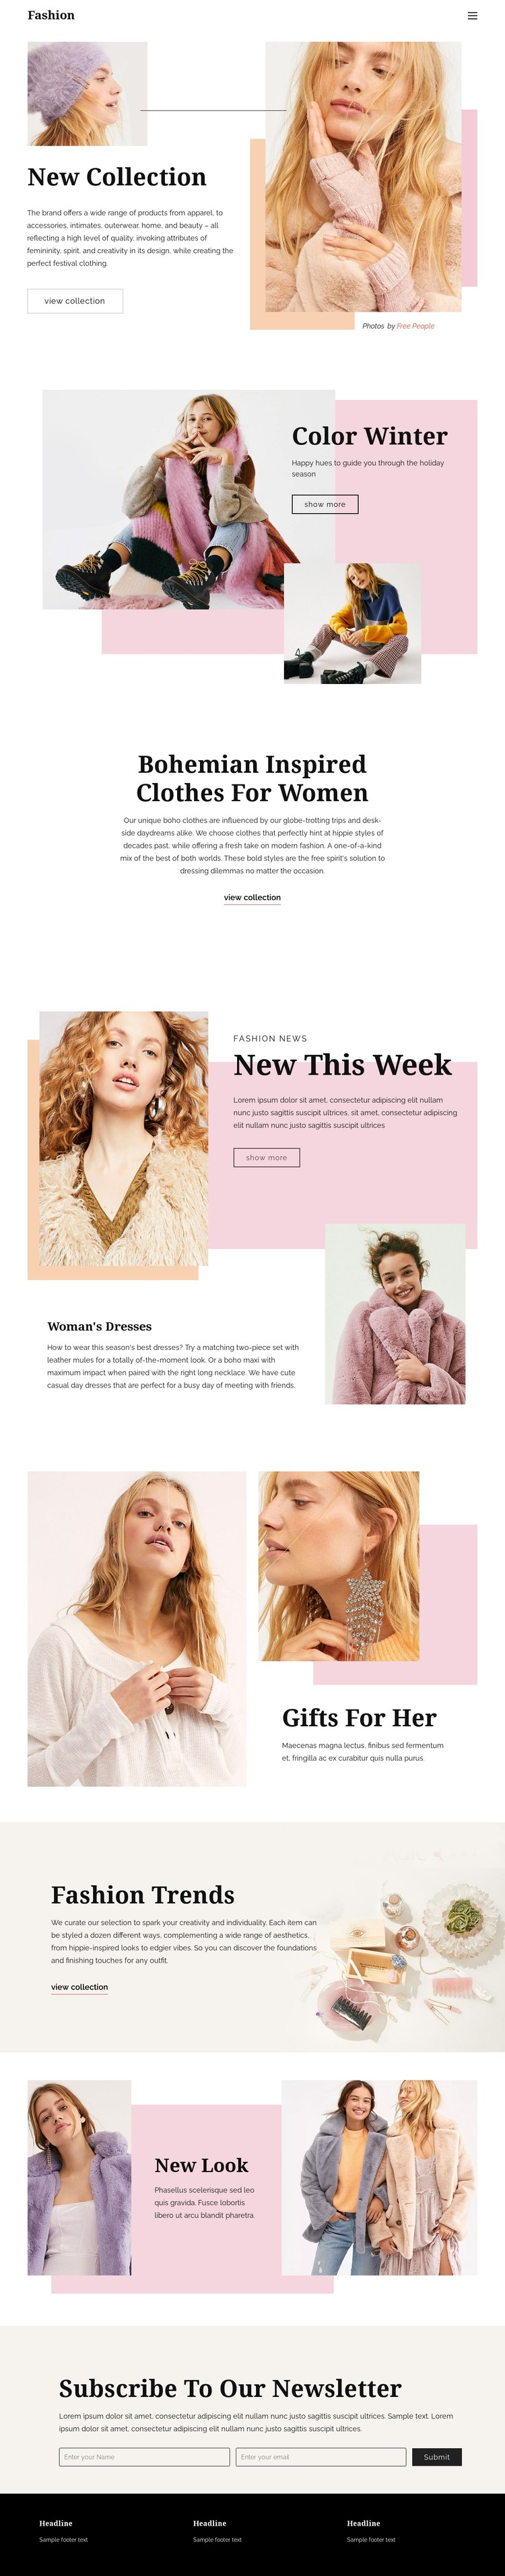 Fashion Page Design CSS Template